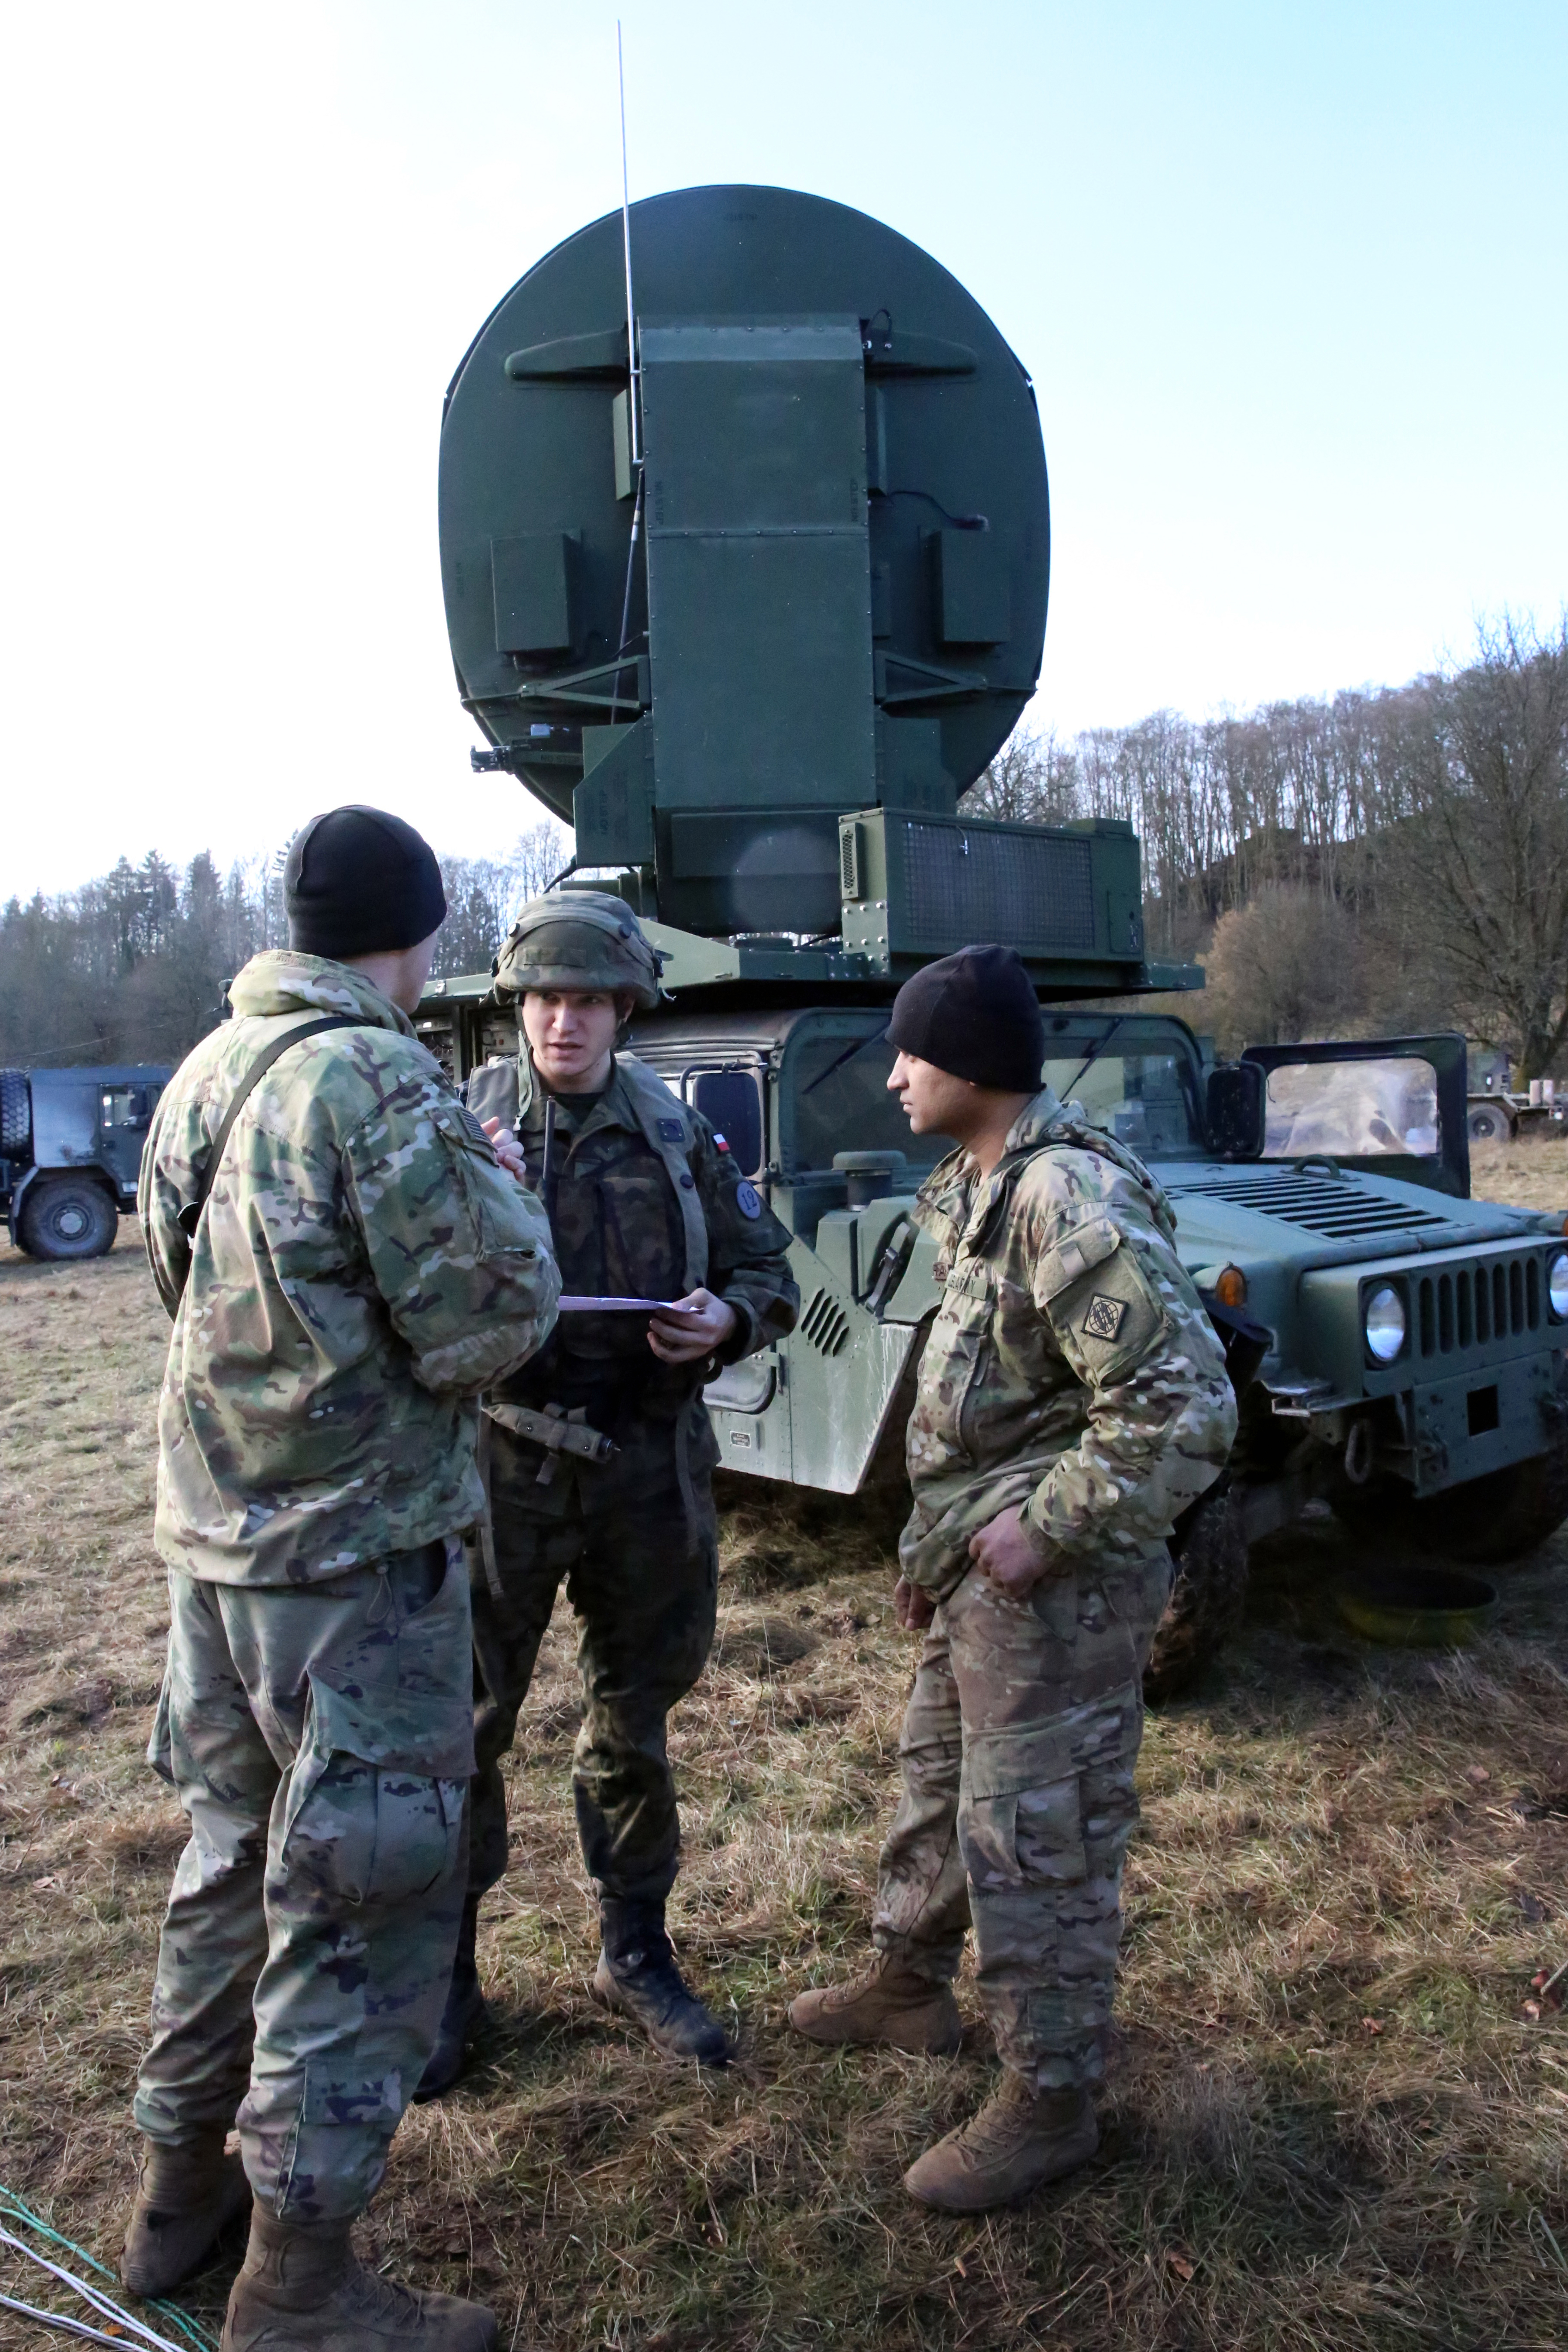 U.S. Army 2nd Lt. Justin Hortin (left), a platoon leader assigned to Charlie Company, 44th Expeditionary Signal Battalion, 2nd Theater Signal Brigade, and platoon sergeant Staff Sgt. Asif Mubarak, speak with a Polish Army officer during exercise Allied Spirit VIII, Jan. 31, 2018 in the Hohenfels Training Area, Germany. (U.S. Army photo by William B. King)